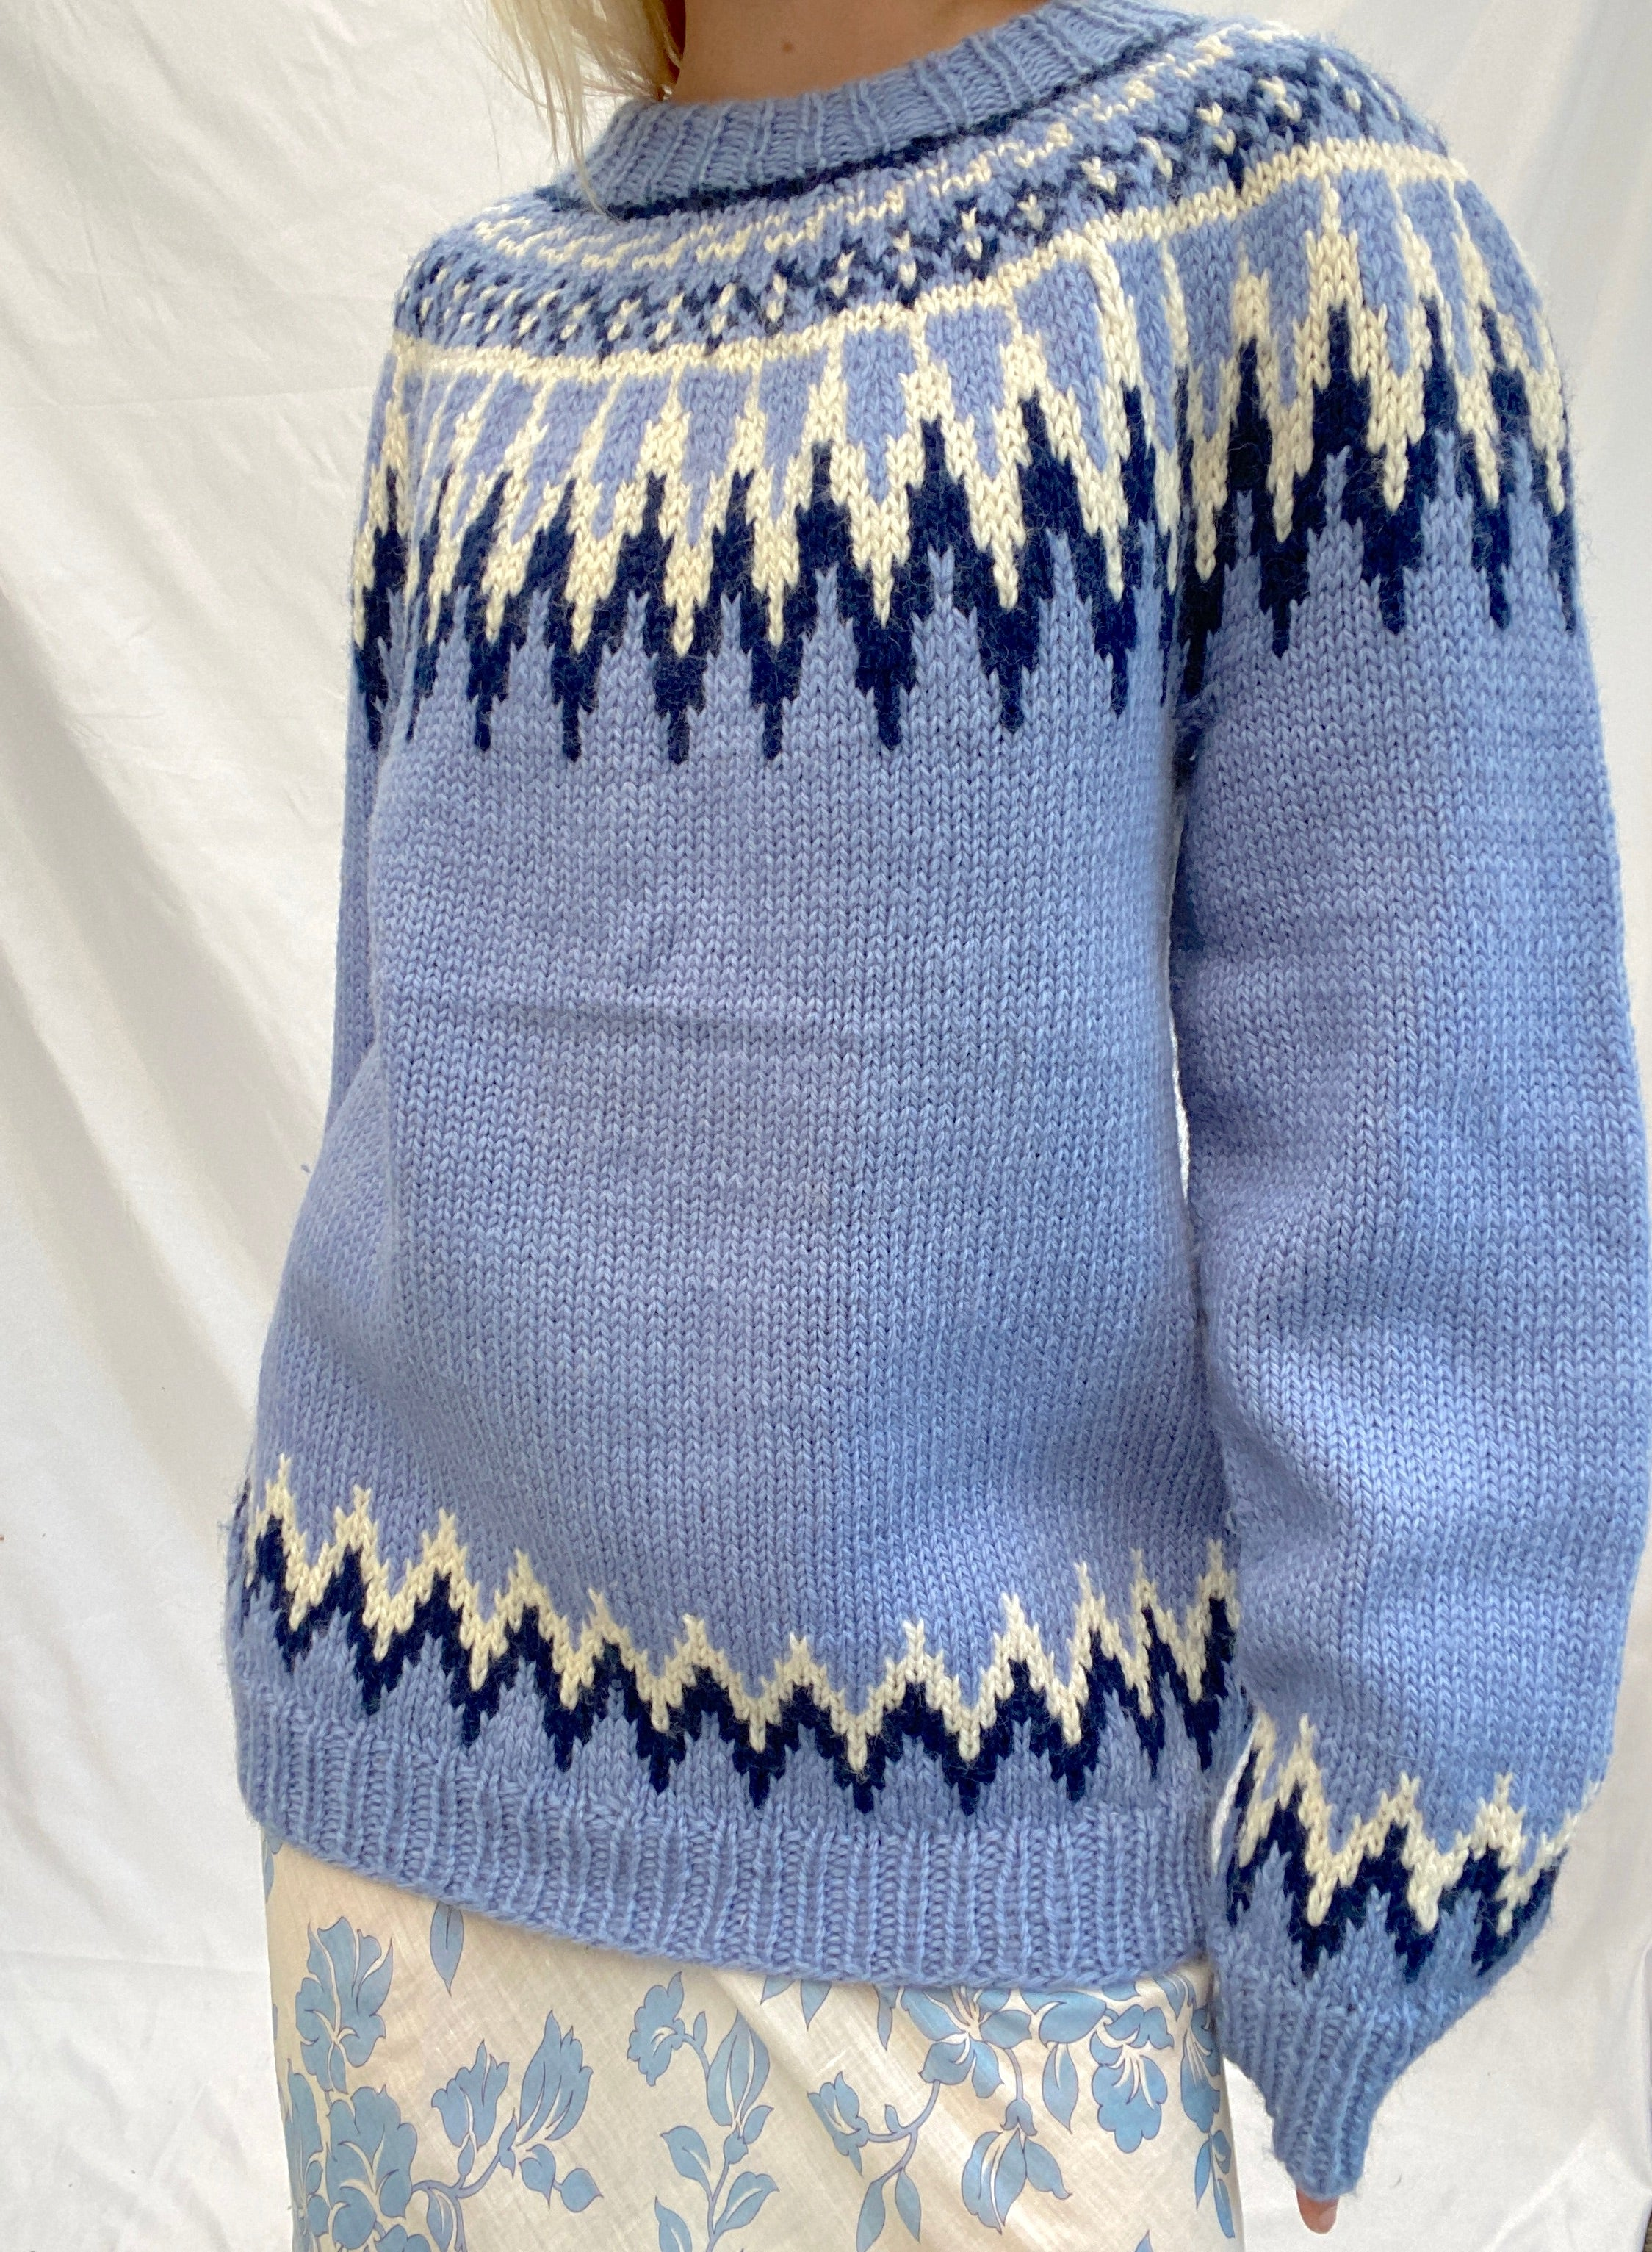 Blue and White Nordic Knit Sweater